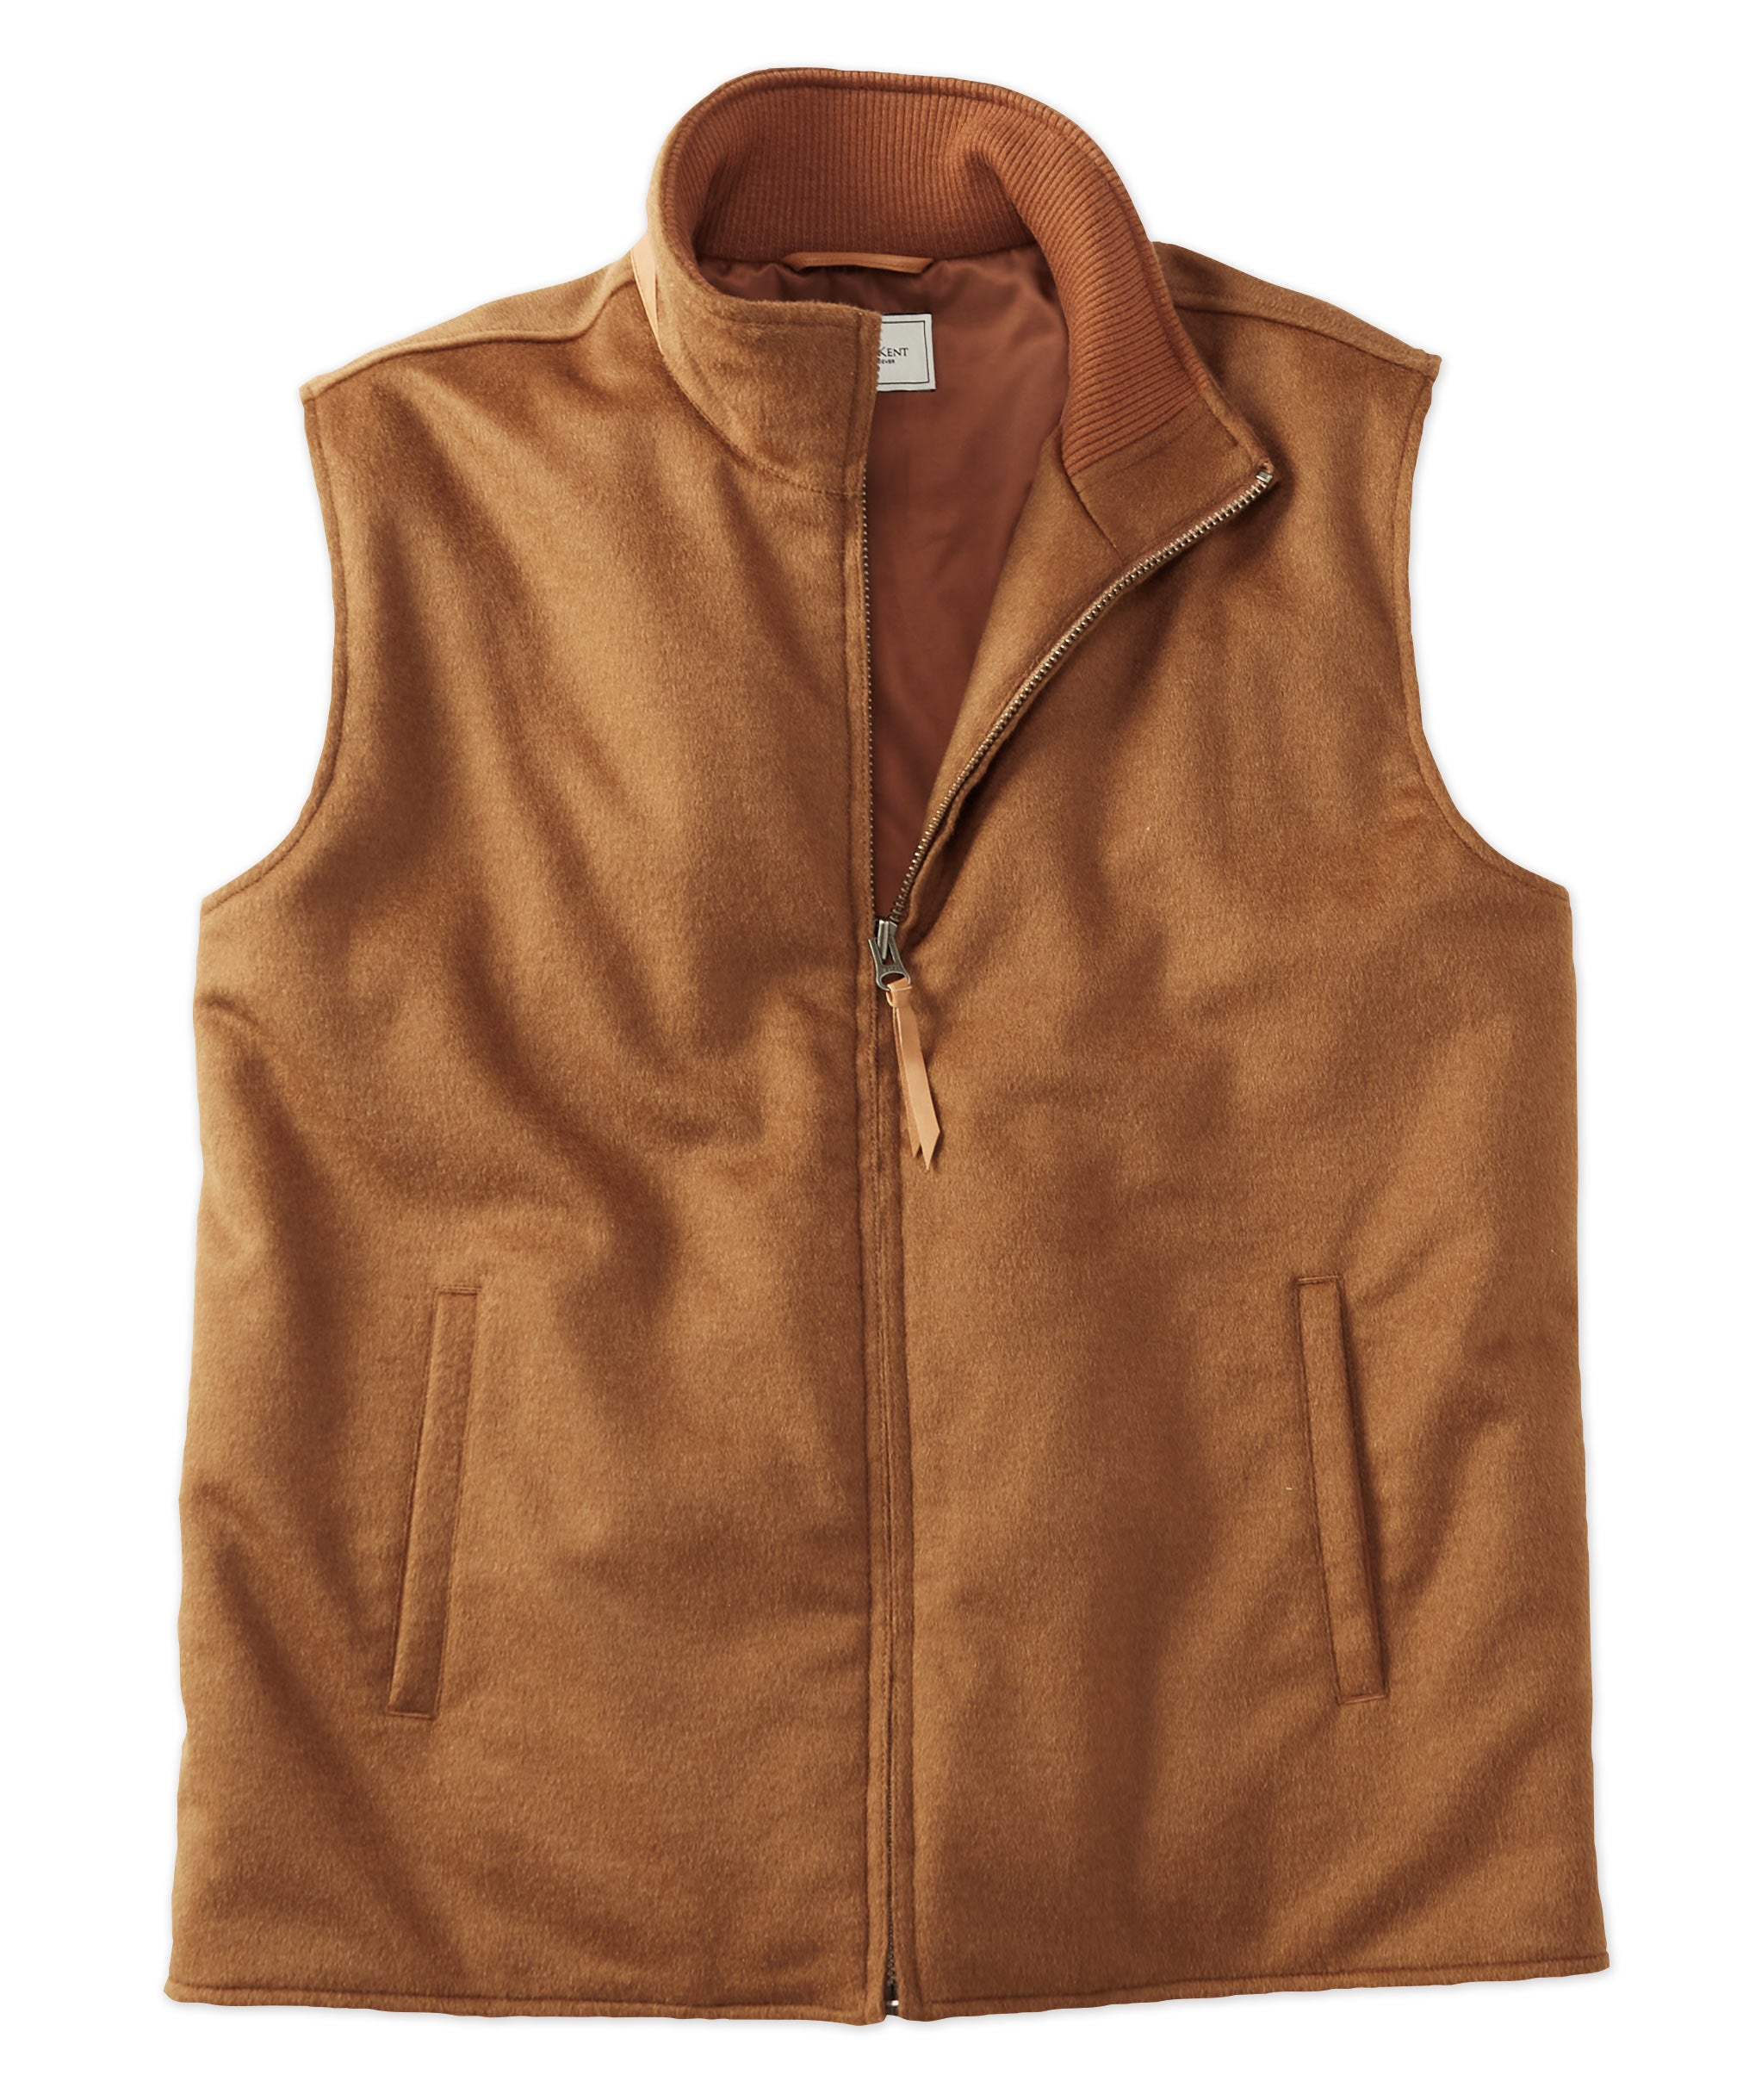 Luxe Wool Full-Zip Vest with Leather Trim